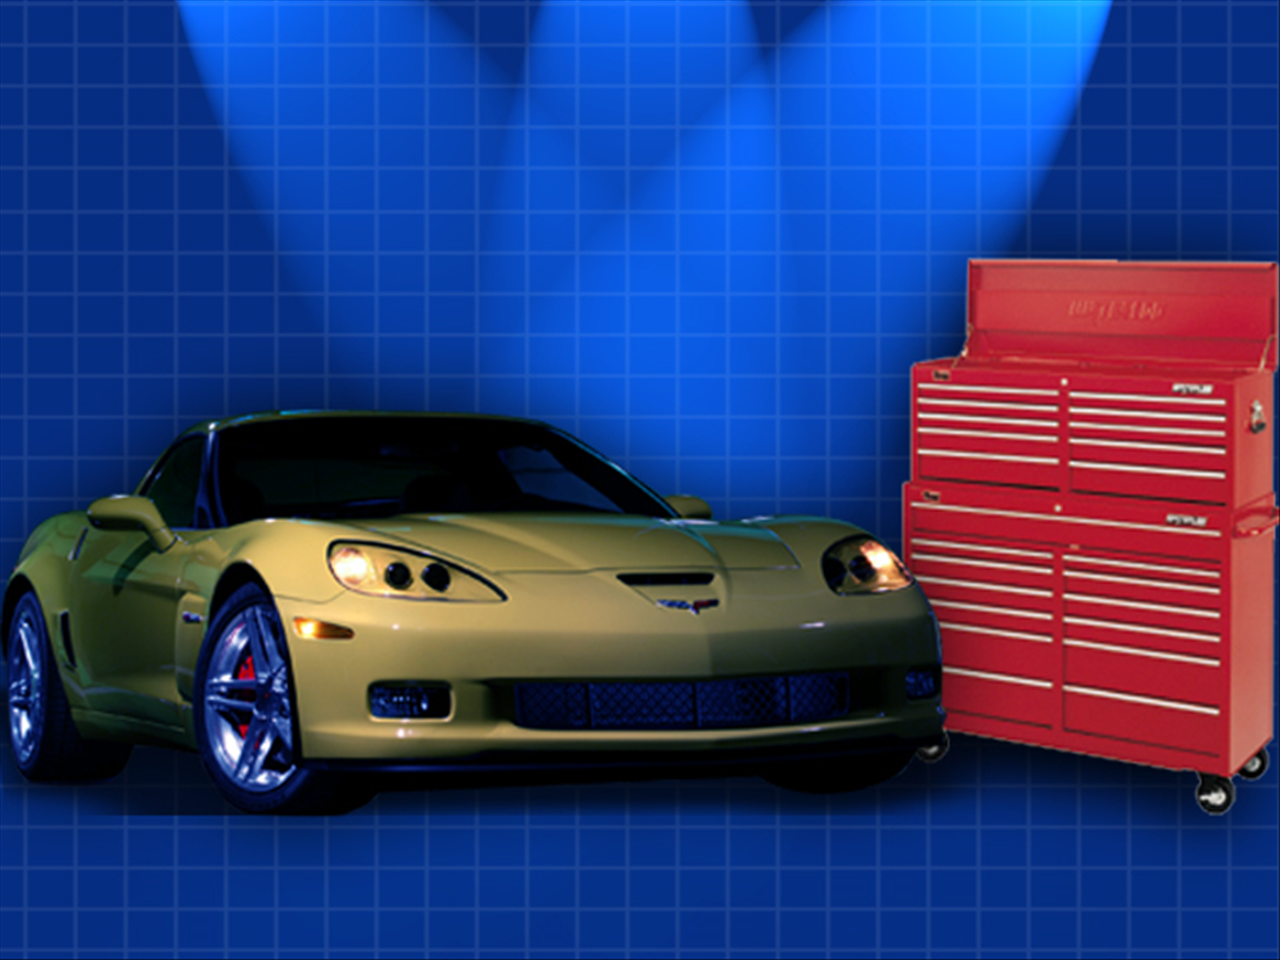 7-2 car mechanic tool box_1530551166074.png.jpg